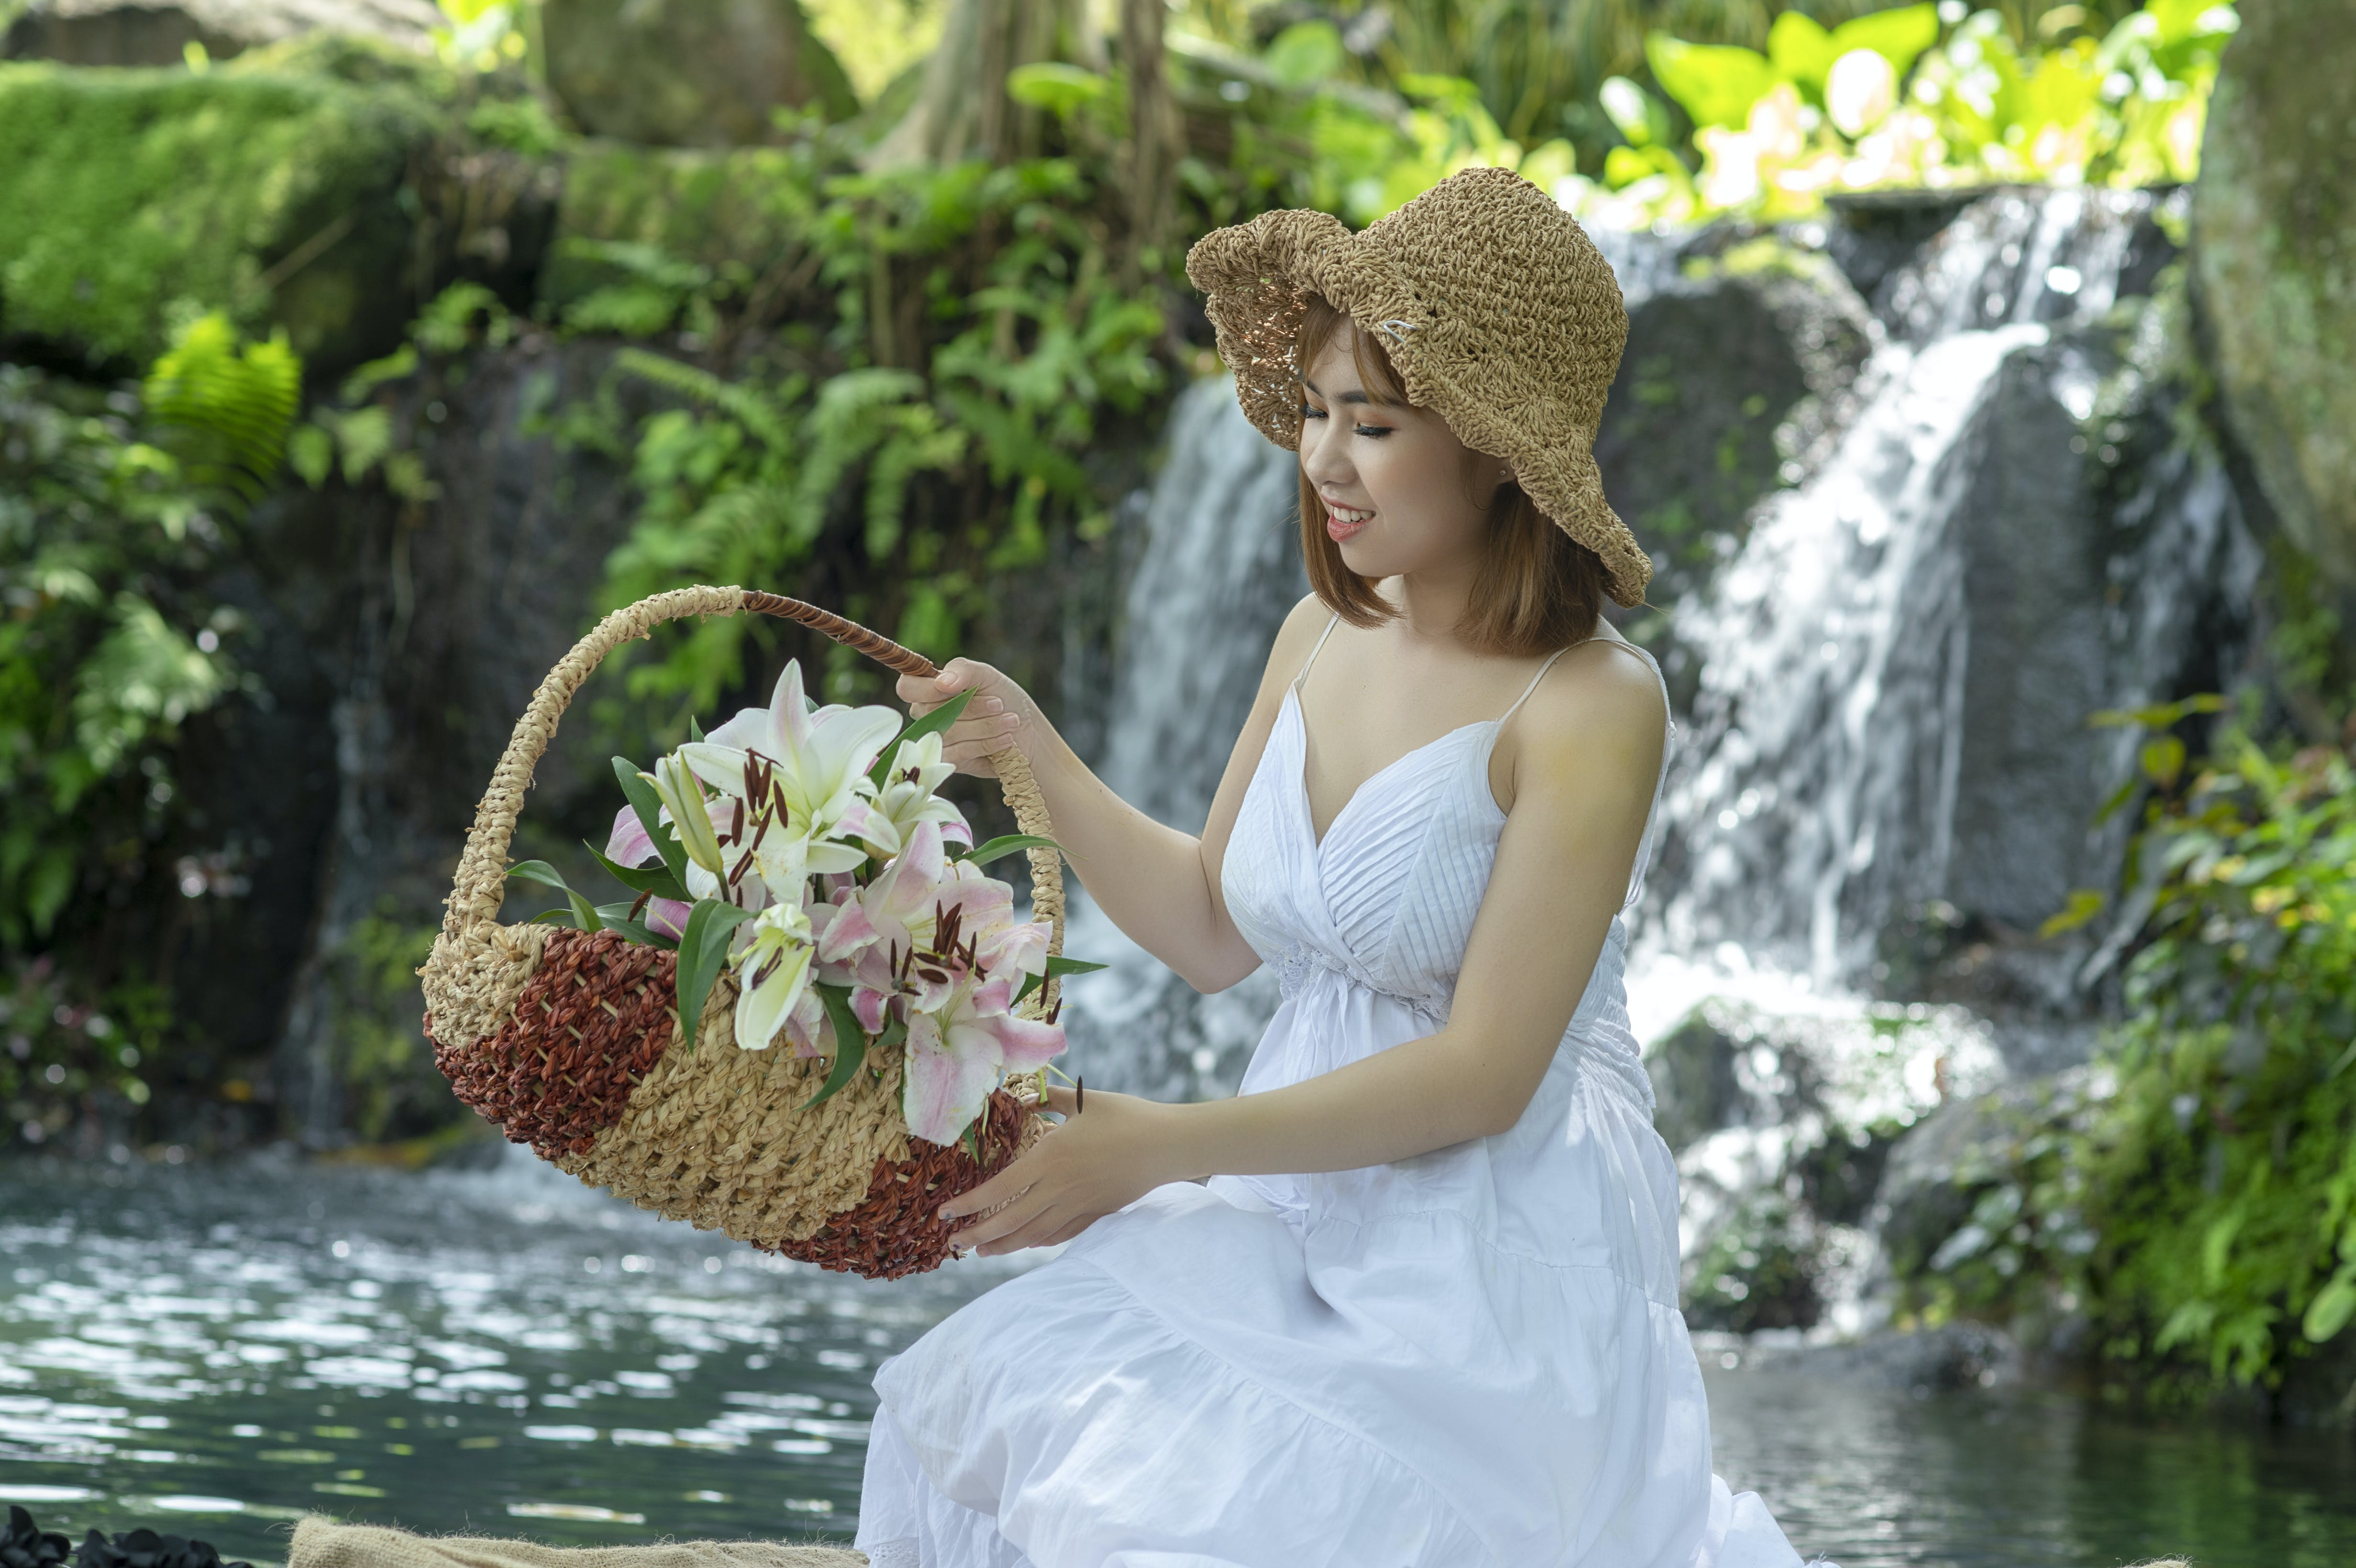 Woman Holding Basket While Sitting Near Waterfall